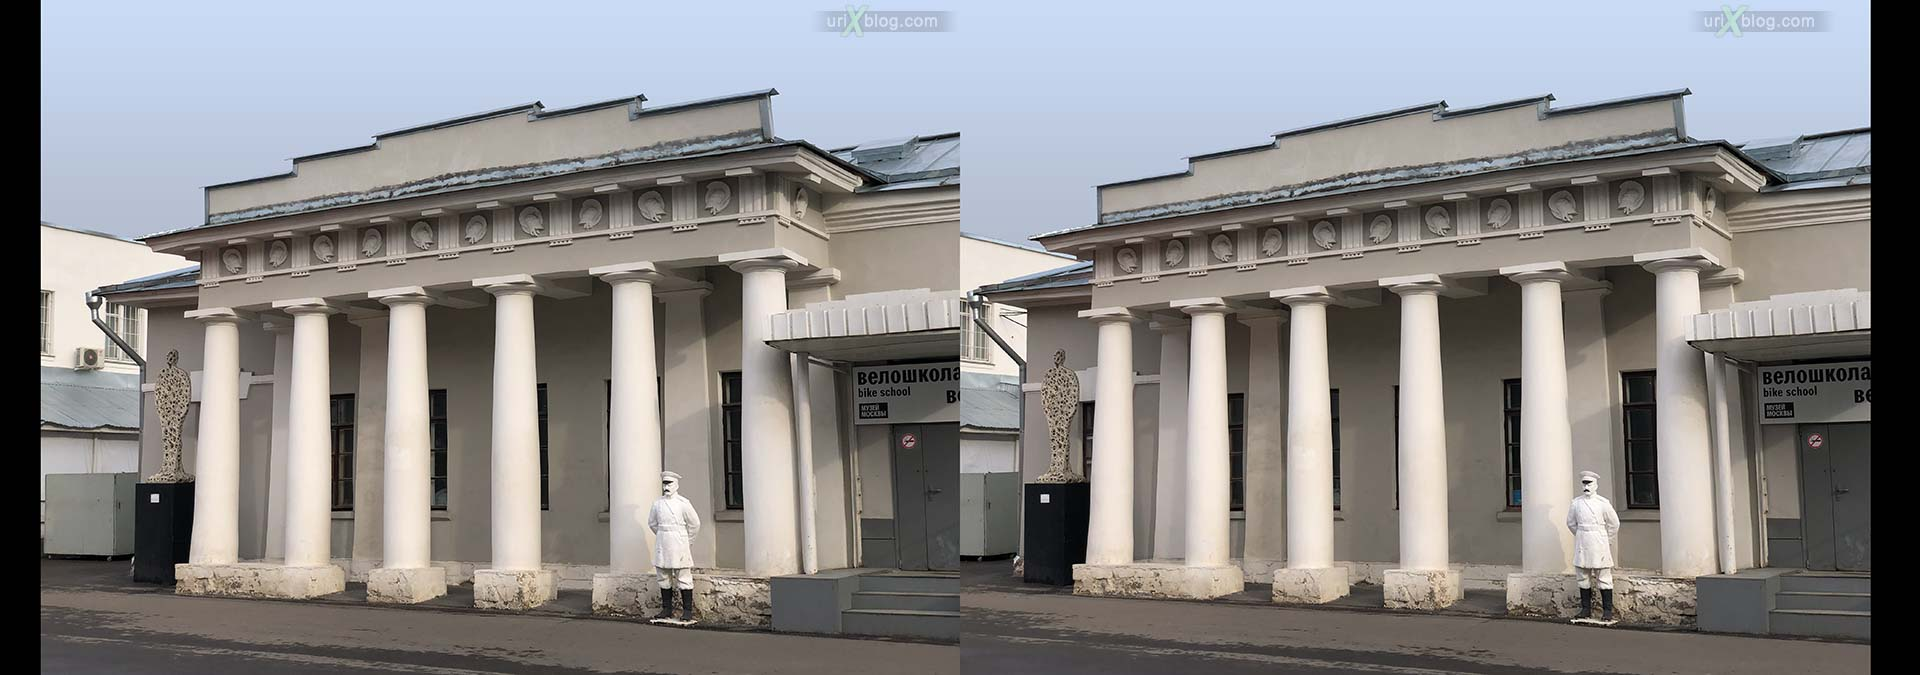 courtyard, Guardhouse, Museum of Moscow, Moscow, Russia, 3D, stereo pair, cross-eyed, crossview, cross view stereo pair, stereoscopic